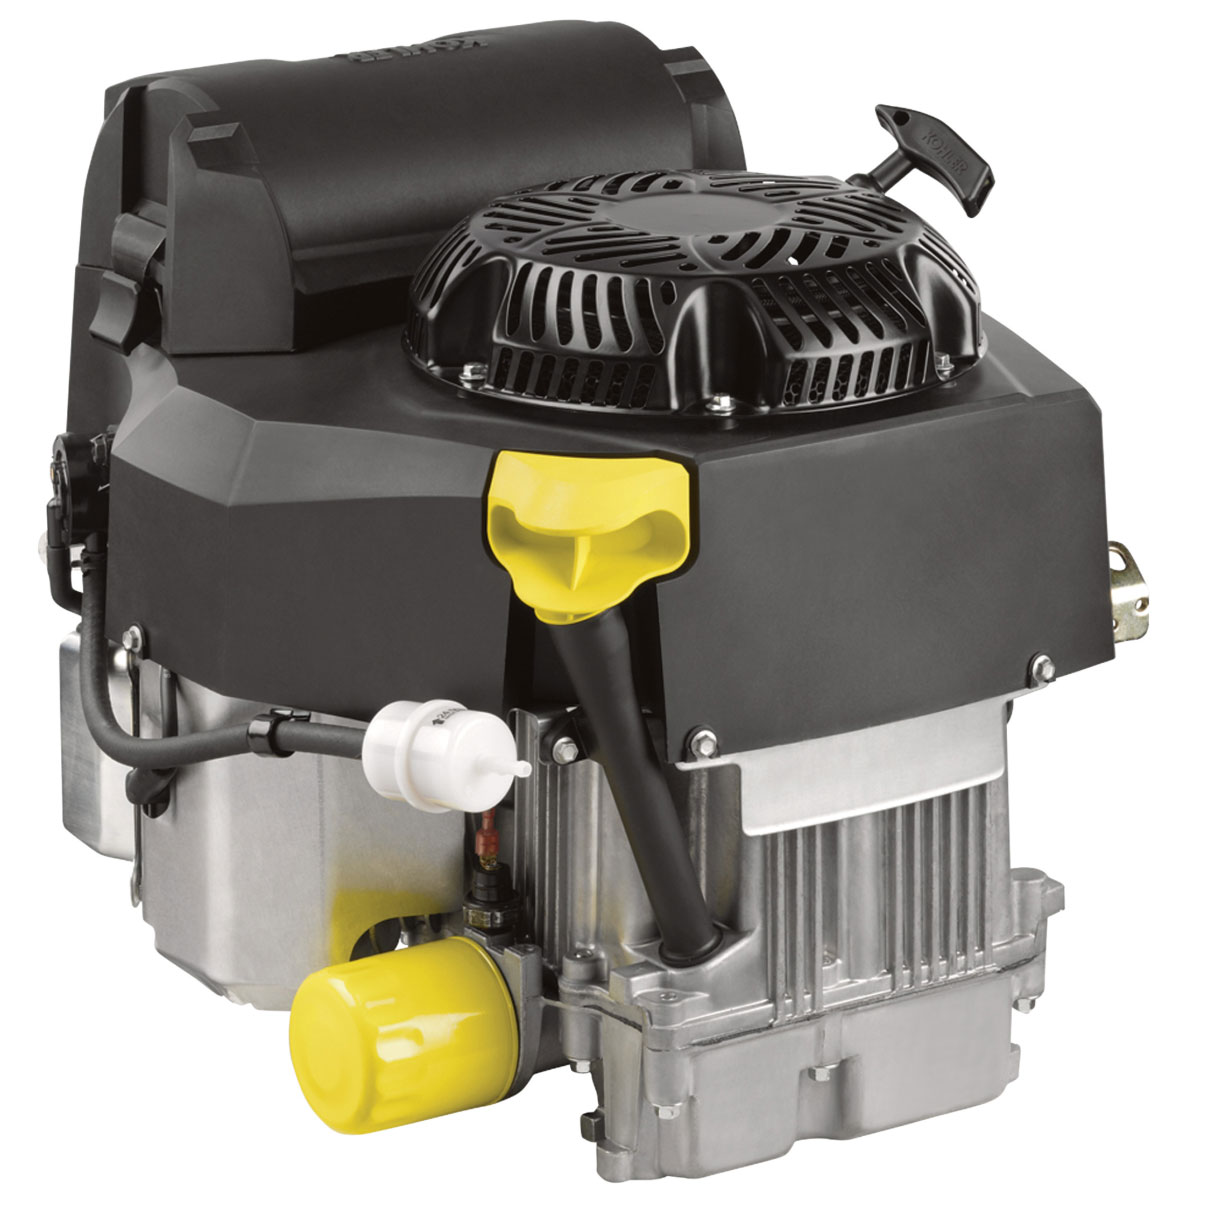 Kohler 27hp Courage Pro Vertical Twin Cylinder Bad Boy Engine PA-KT745-3088 1-1/8 Shaft Replaces SV840-3001 PA-KT745-3031